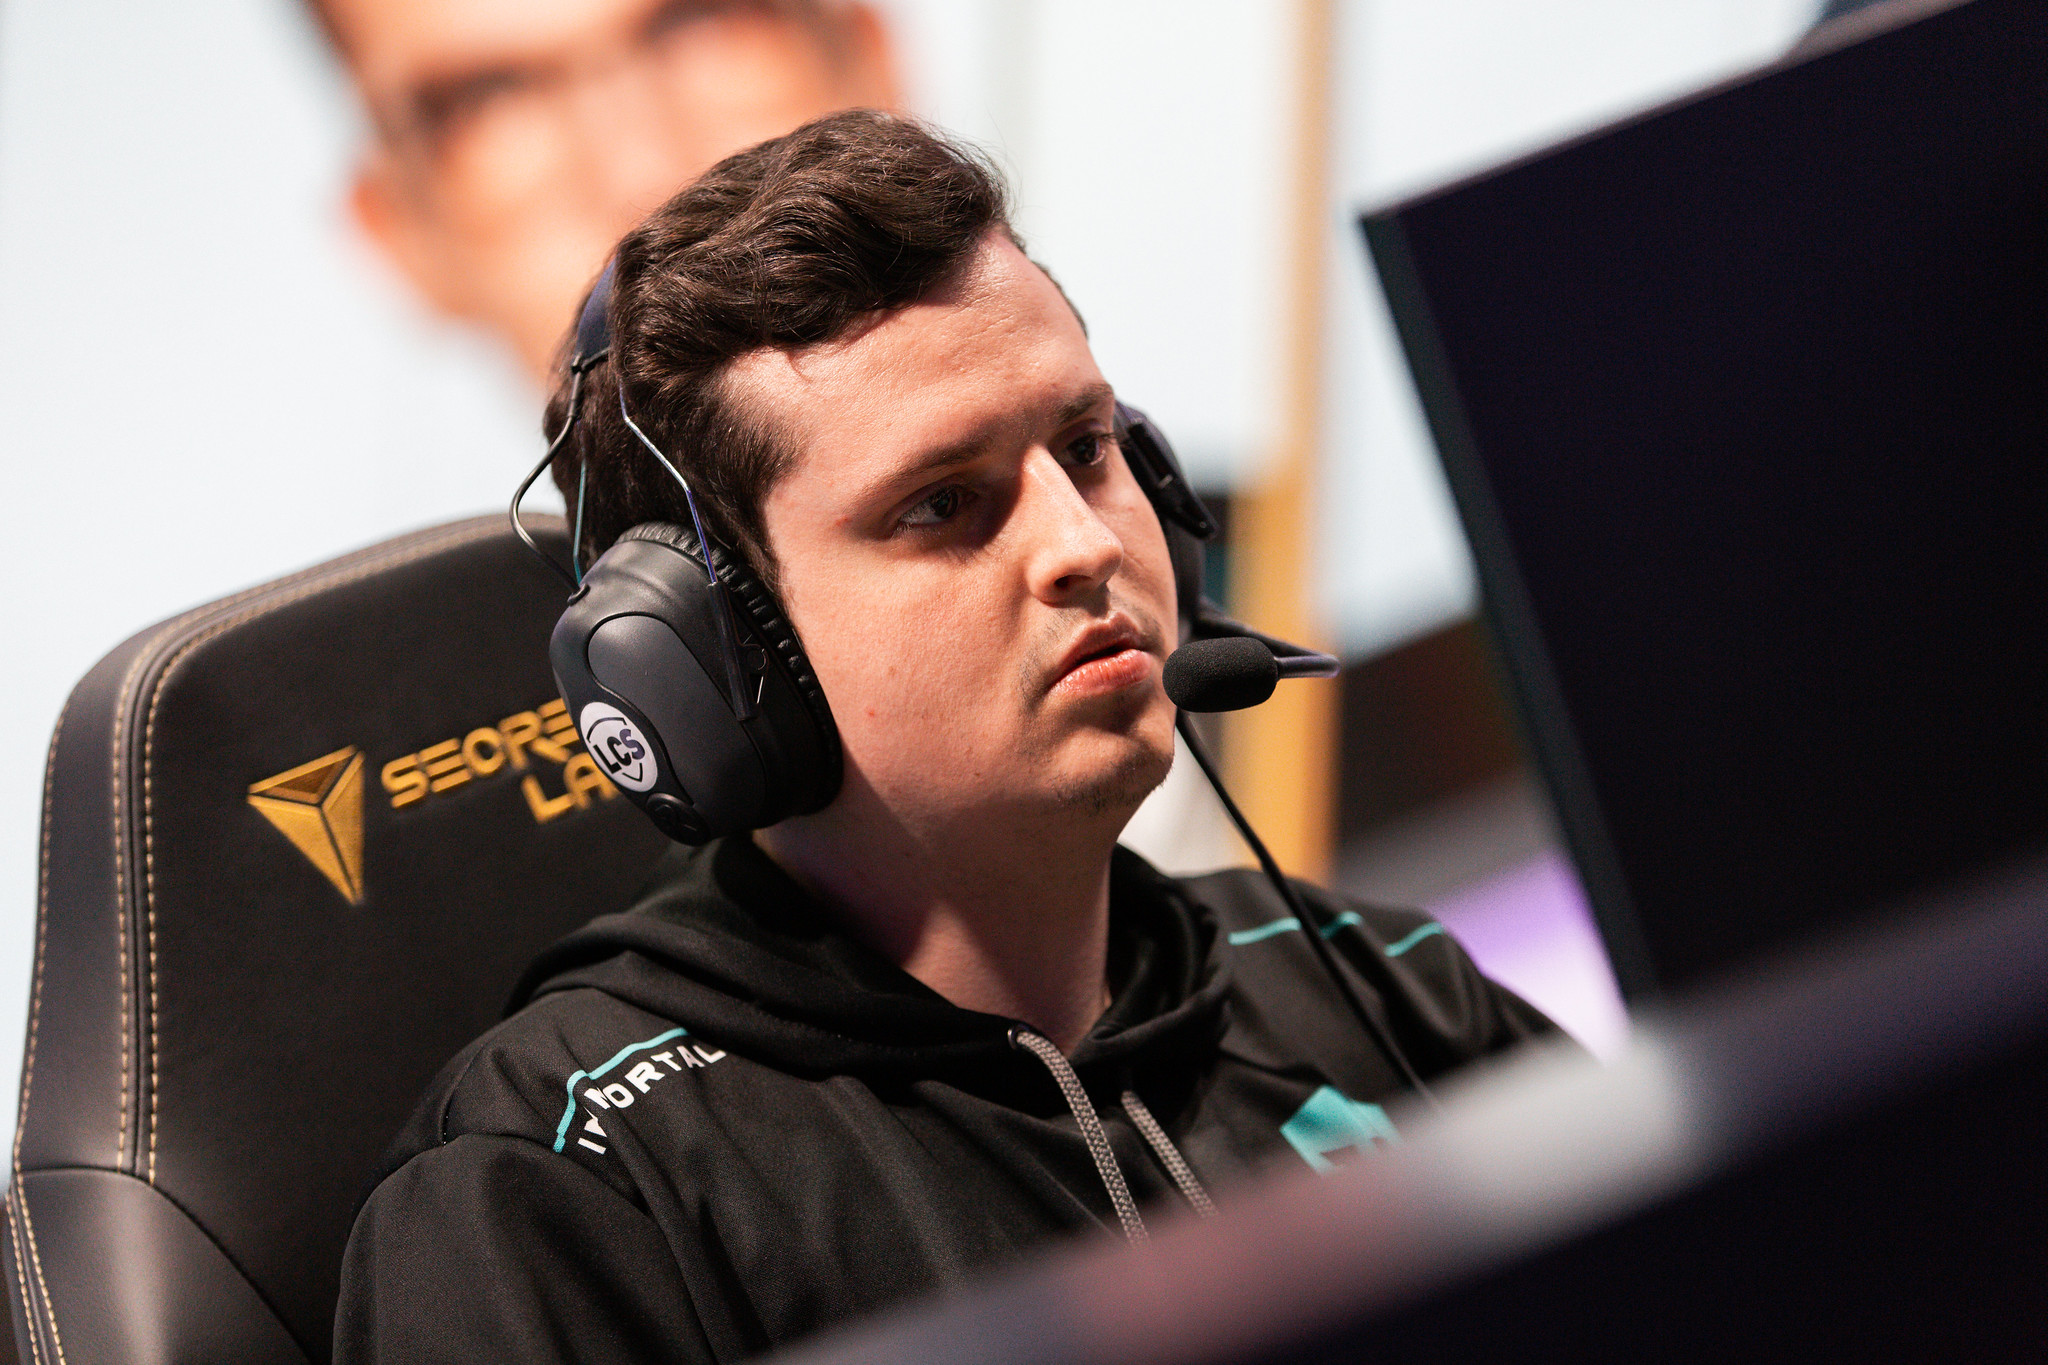 sOAZ playing for League team Immortals in LCS Spring 2020